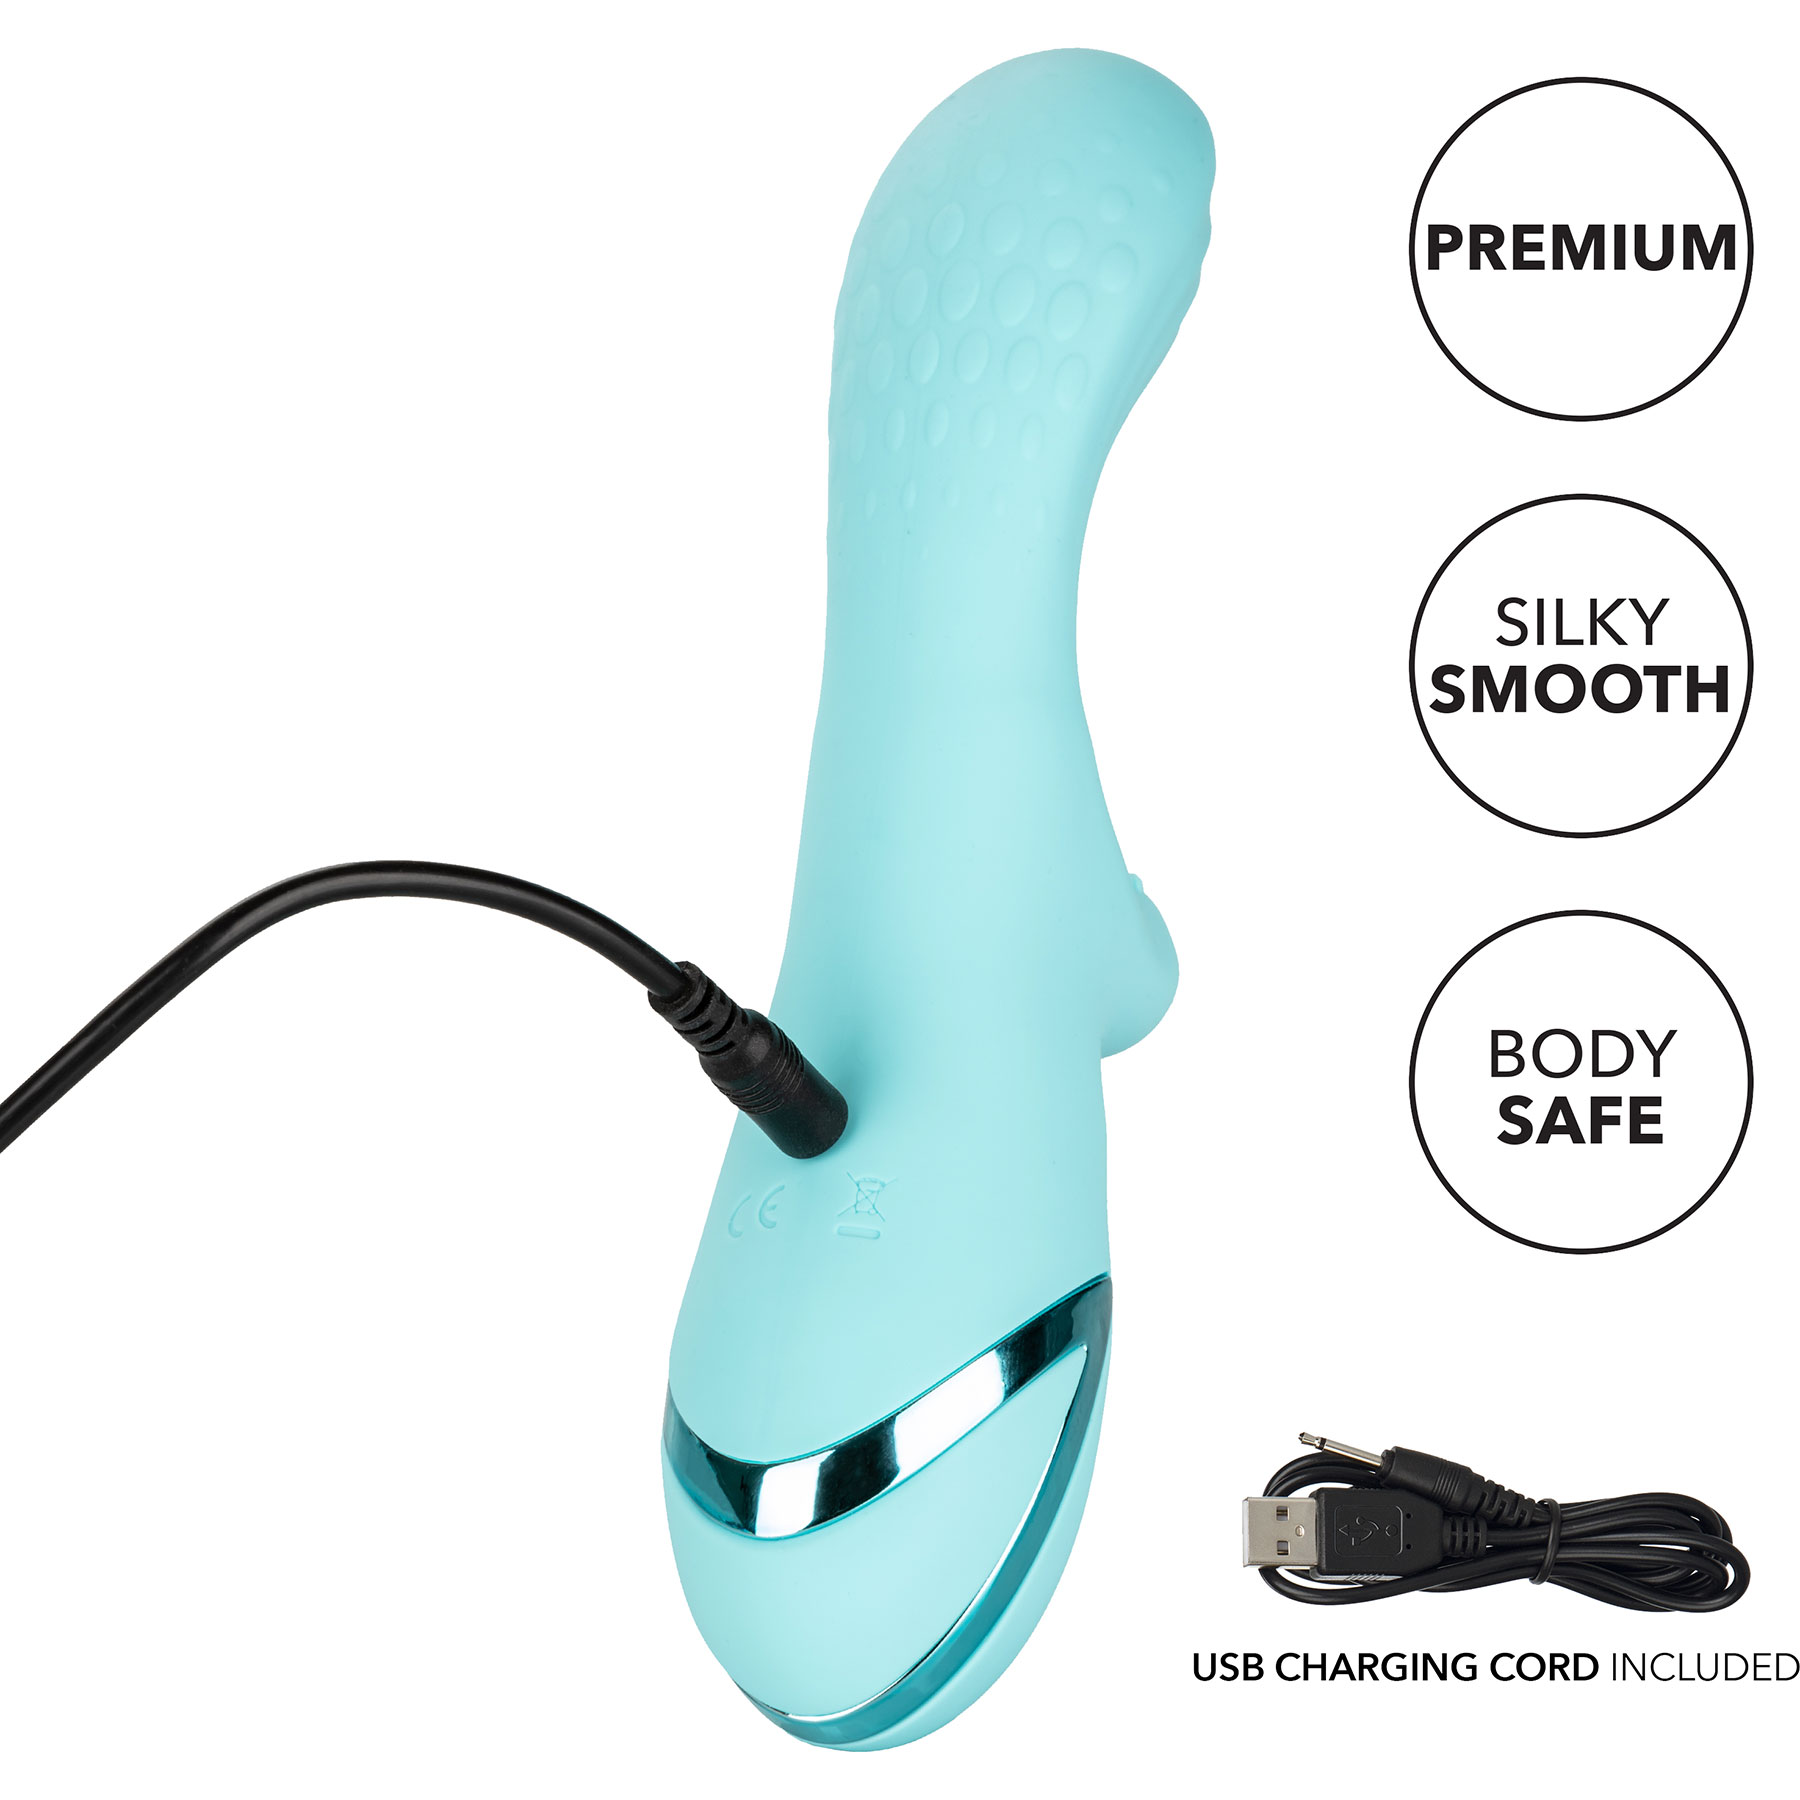 California Dreaming Catalina Climaxer Rabbit Style Silicone Vibrator - Charging